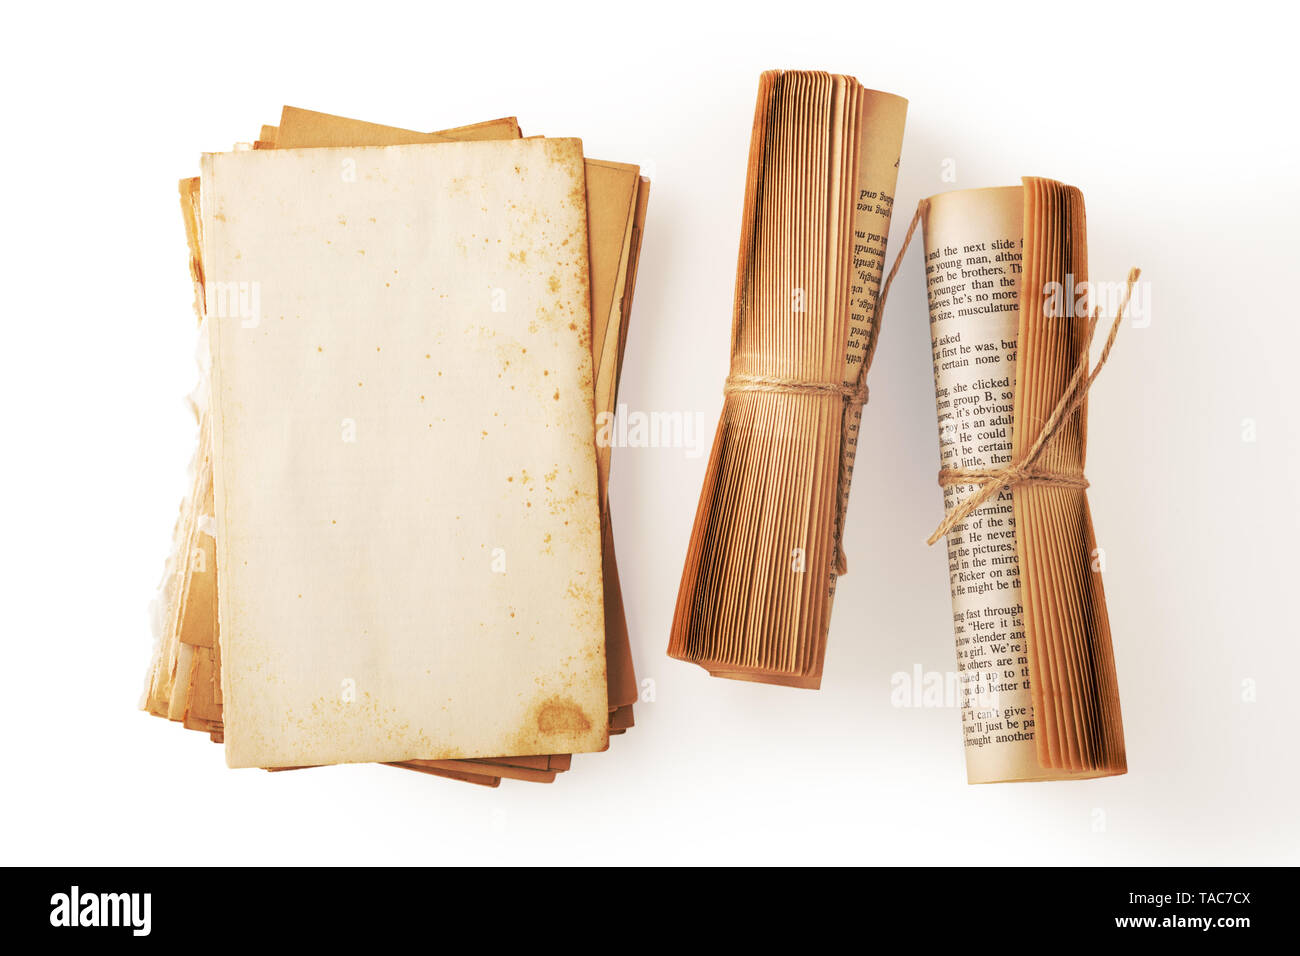 Old book paper and book roll with brown string tied, vintage book decor on white background - Stock Image